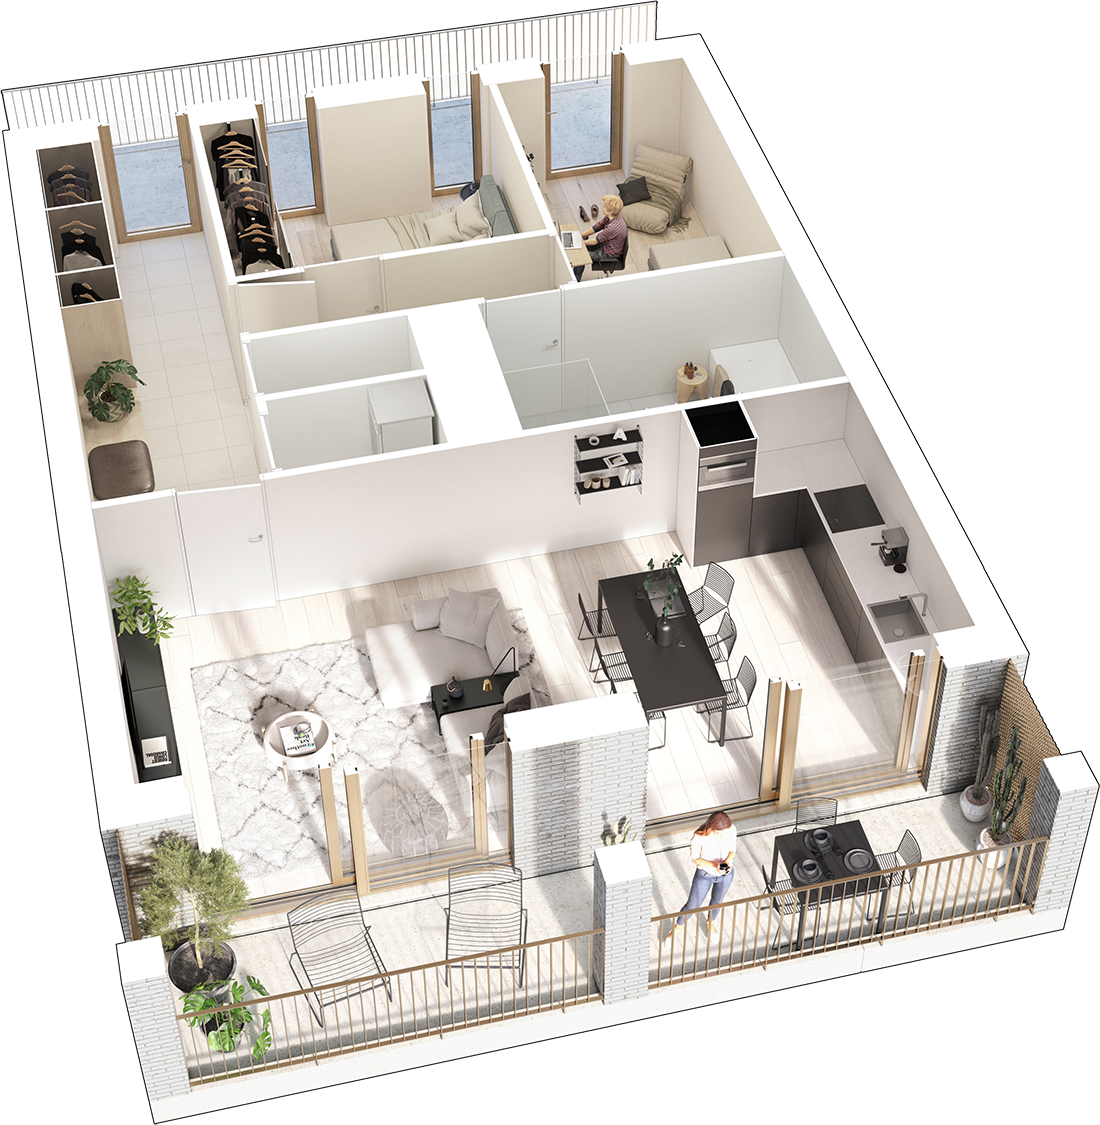 2-bedroom apartments